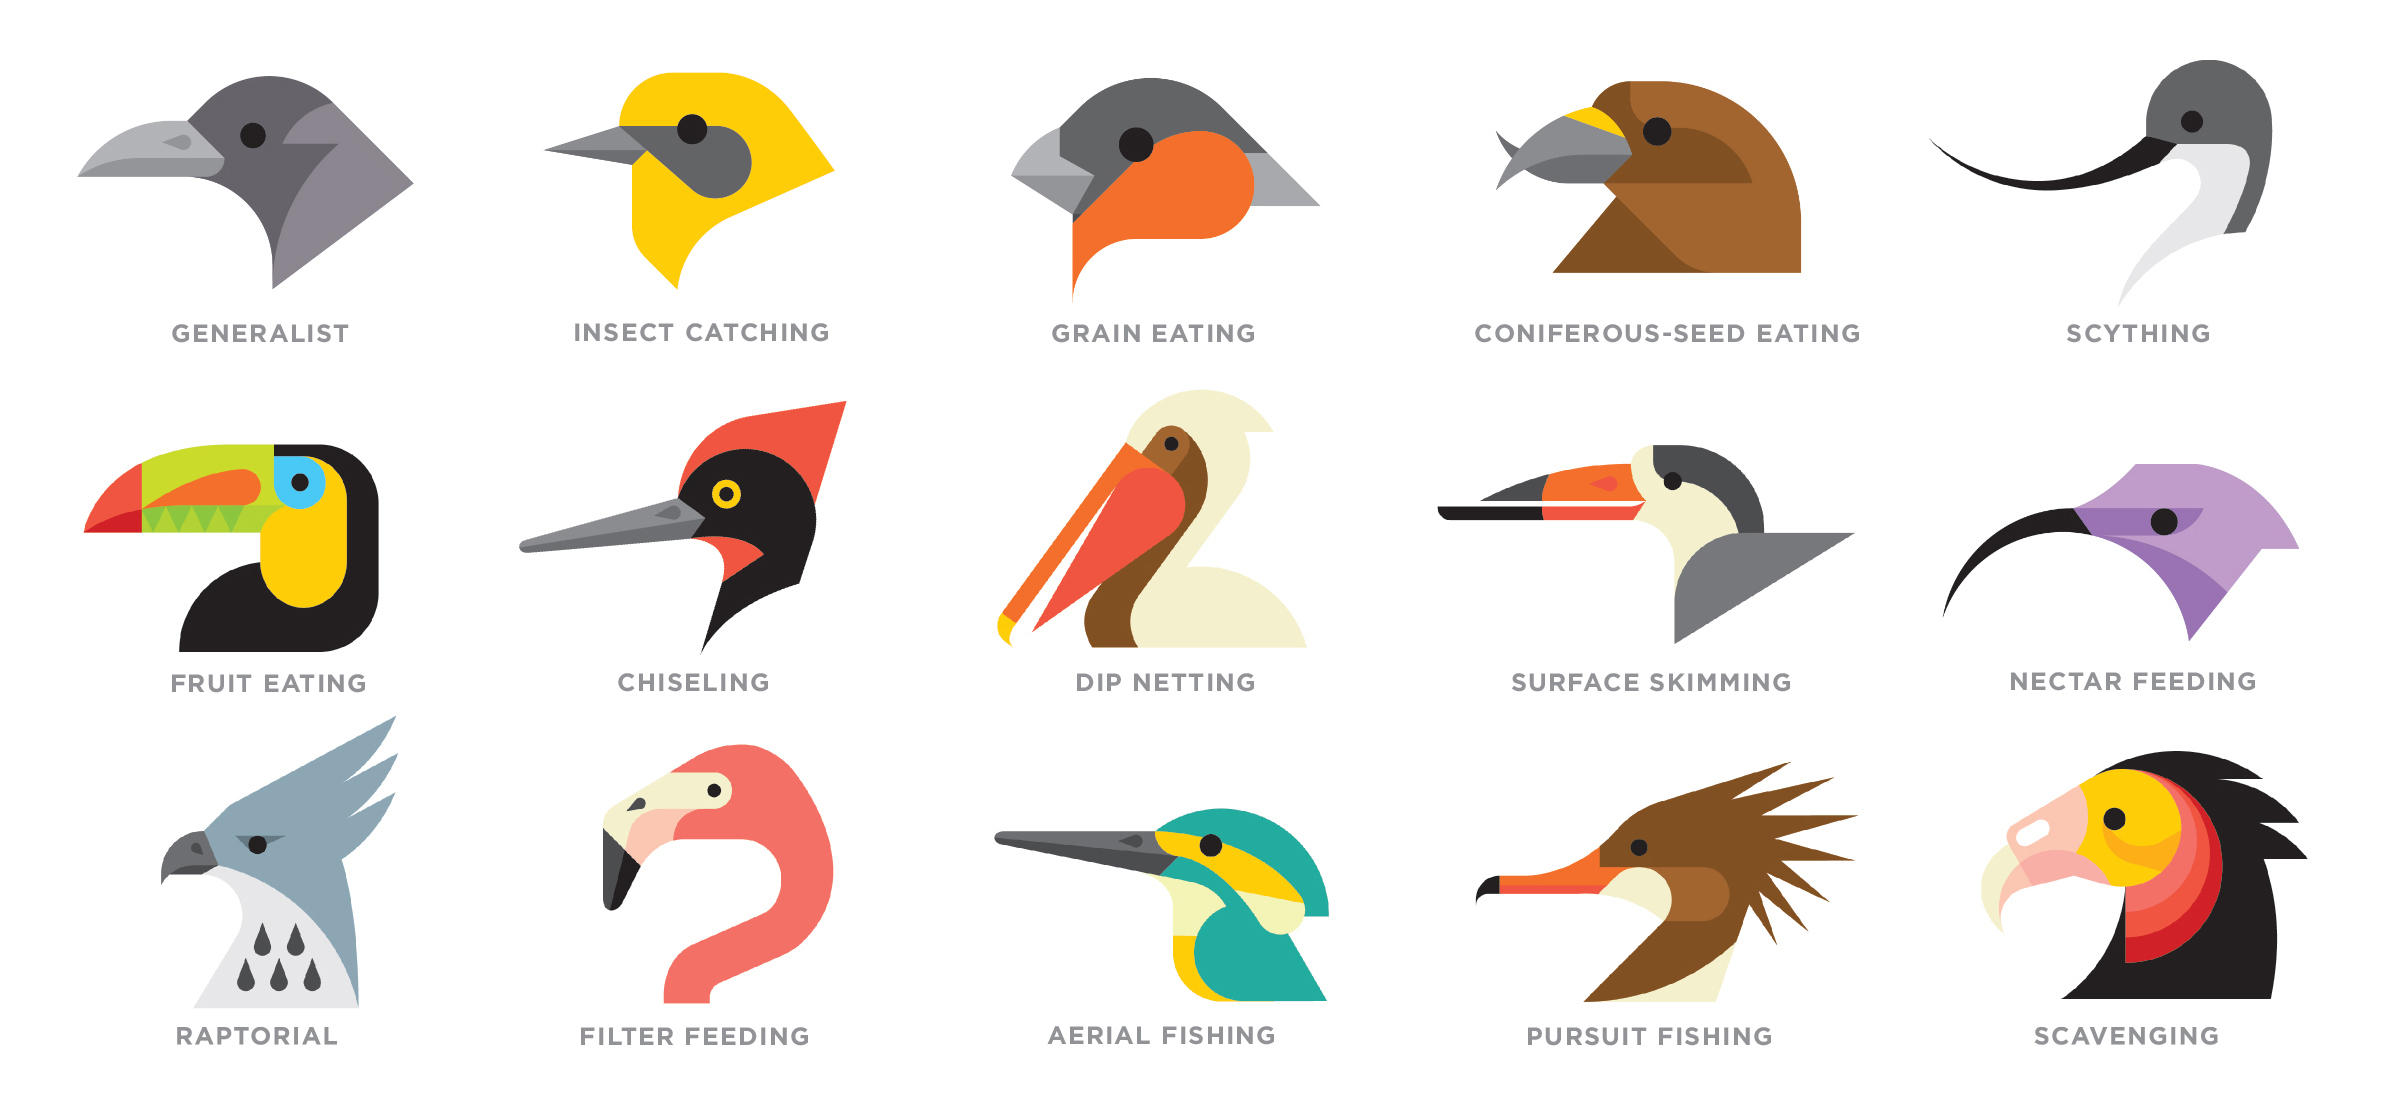 In an ecosystem where there live many birds, we often see that there.